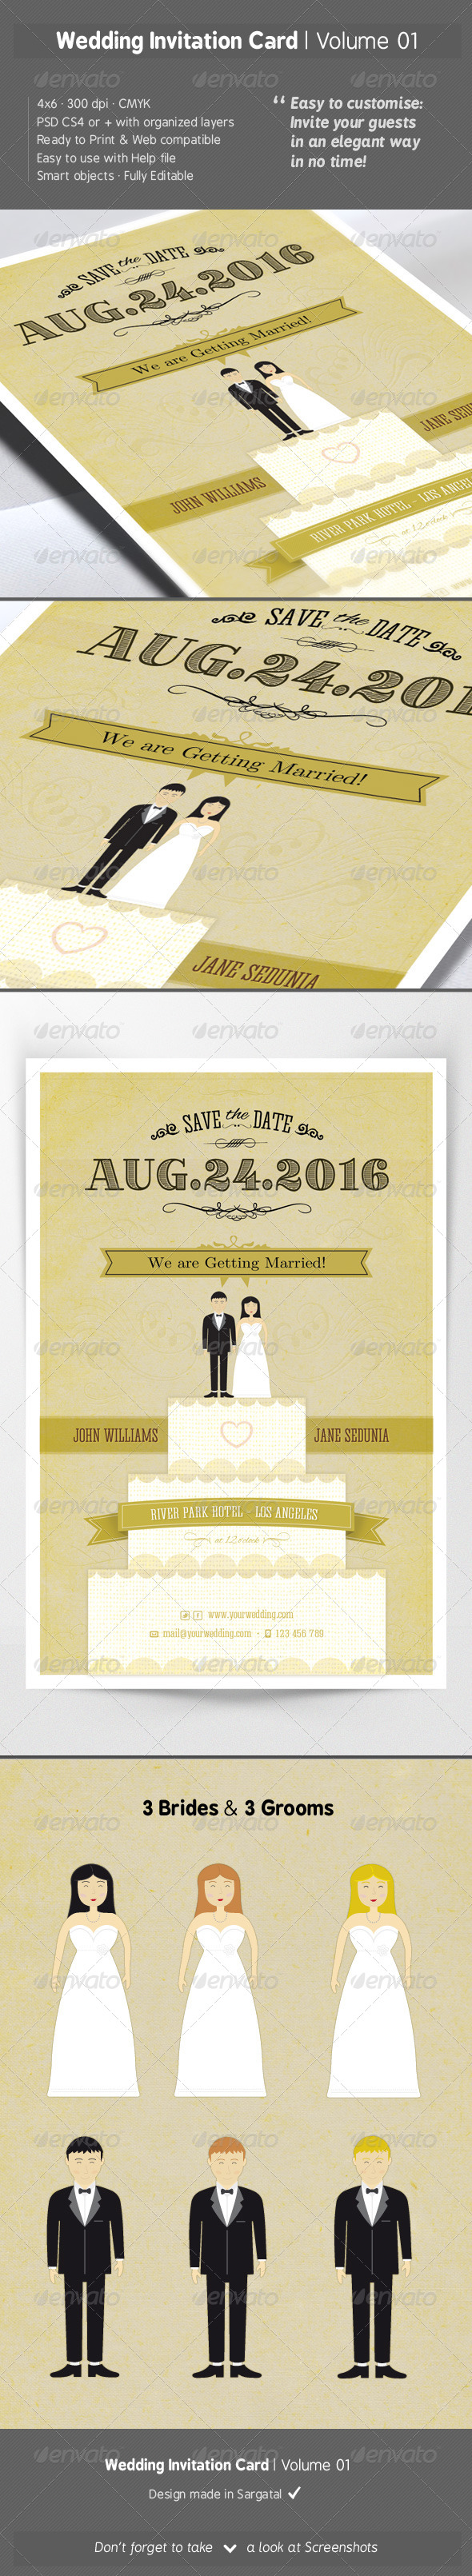 Wedding Invitation Card - Volume 01